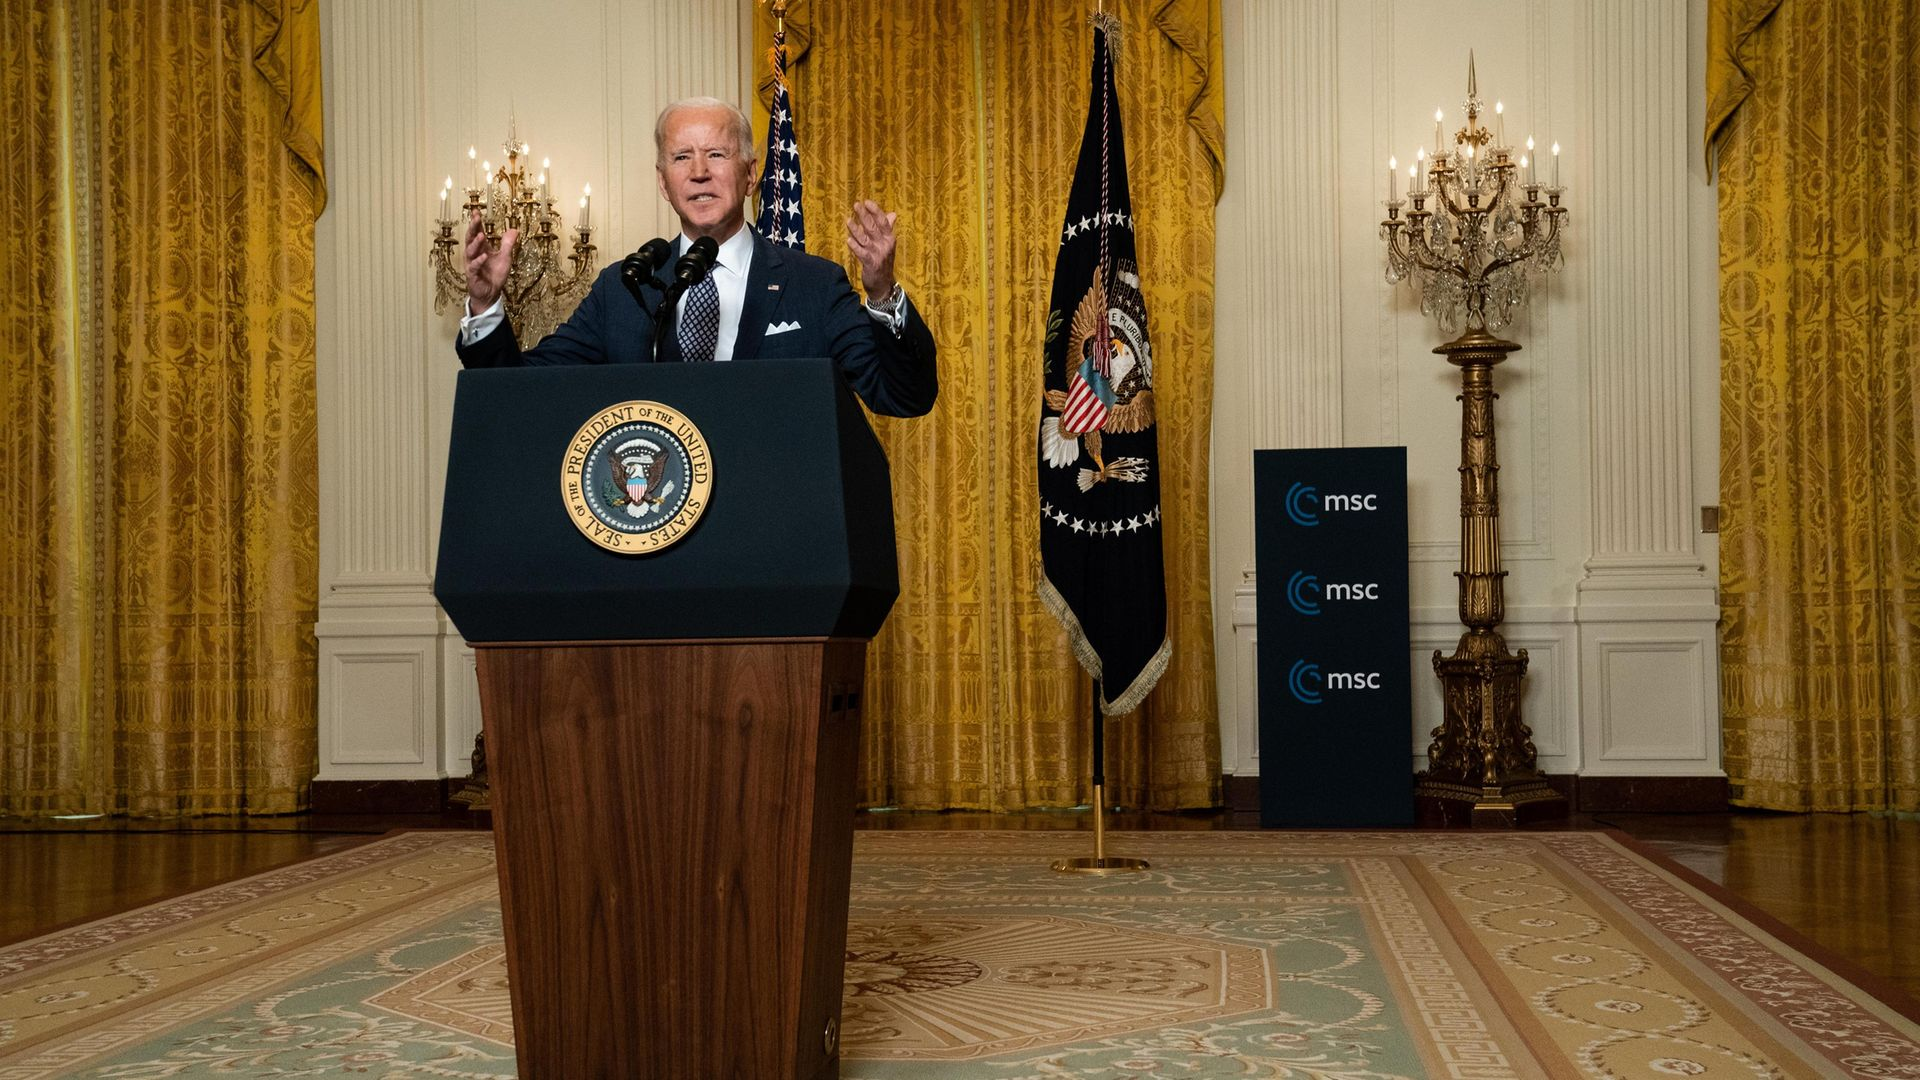 SPEAKING UP: Joe Biden speaks to the Munich Security Conference from the White House - Credit: Getty Images